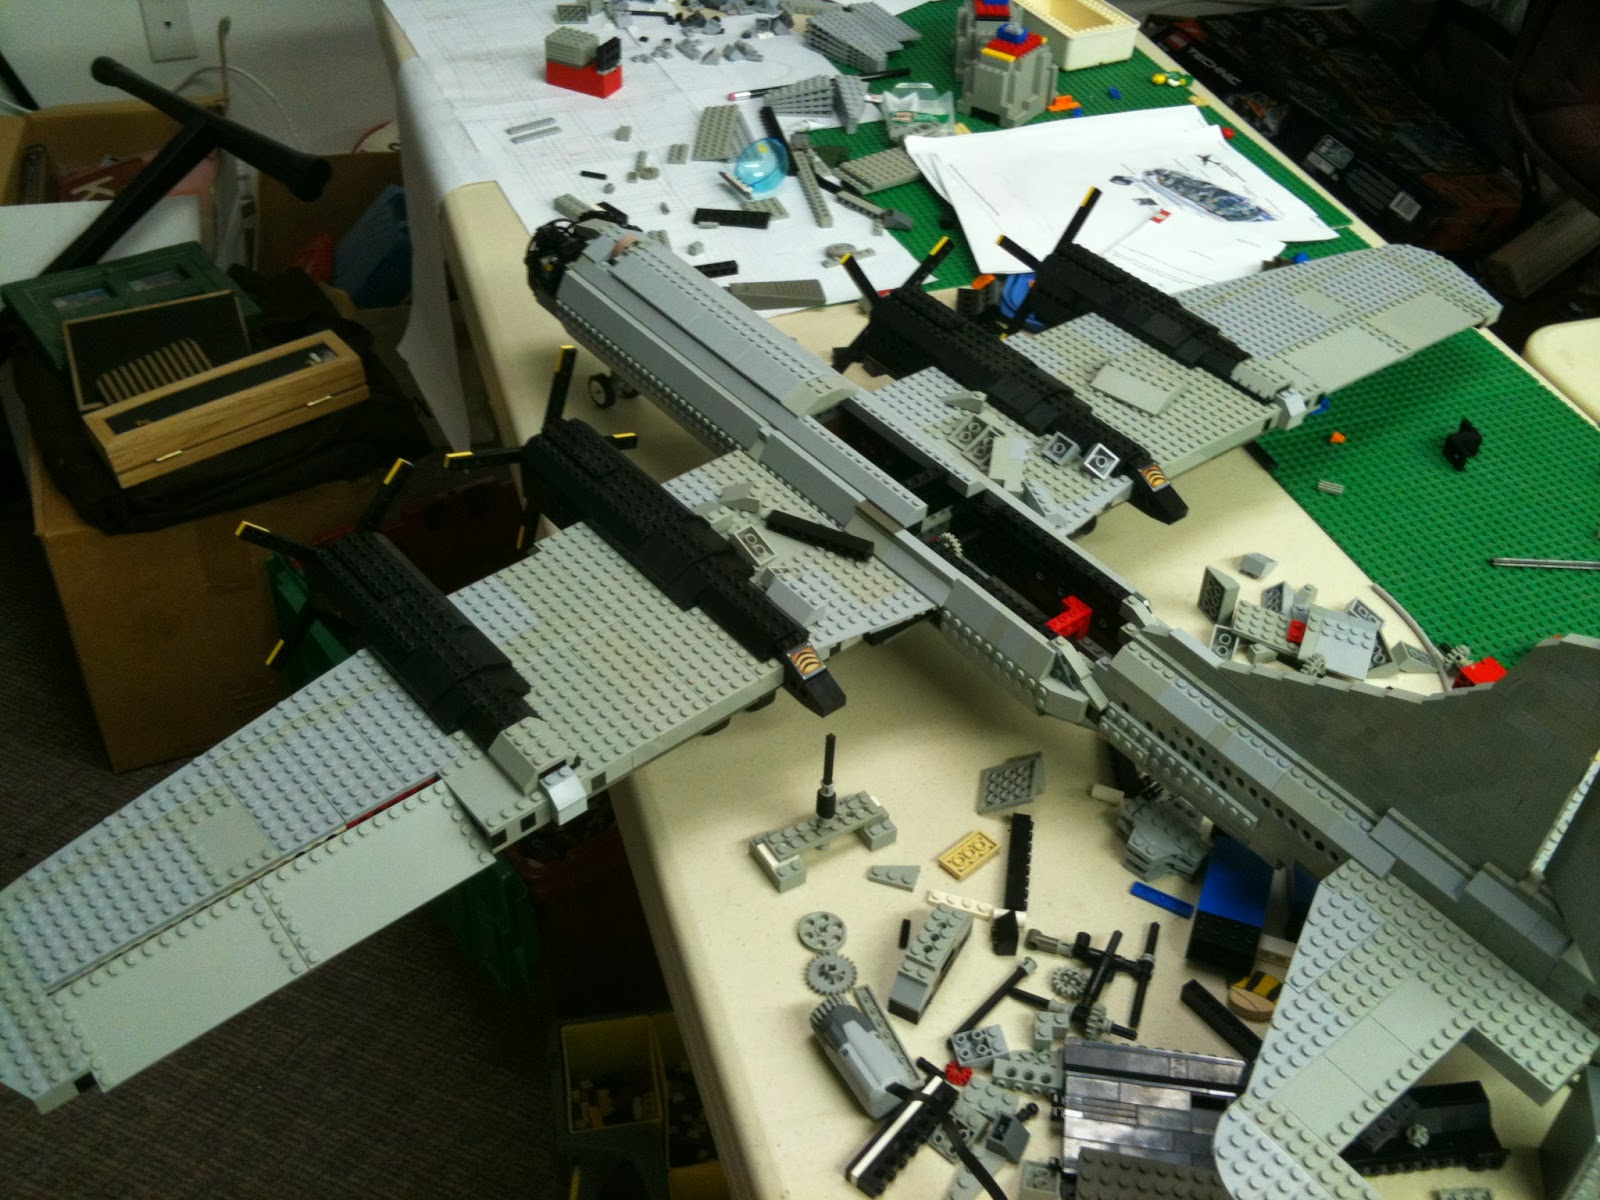 My LEGO Portfolio  B 29 Superfortress  Part 2  As I build each of my models  I am constantly evaluating and changing my  plans  I might tweak something here  another thing there